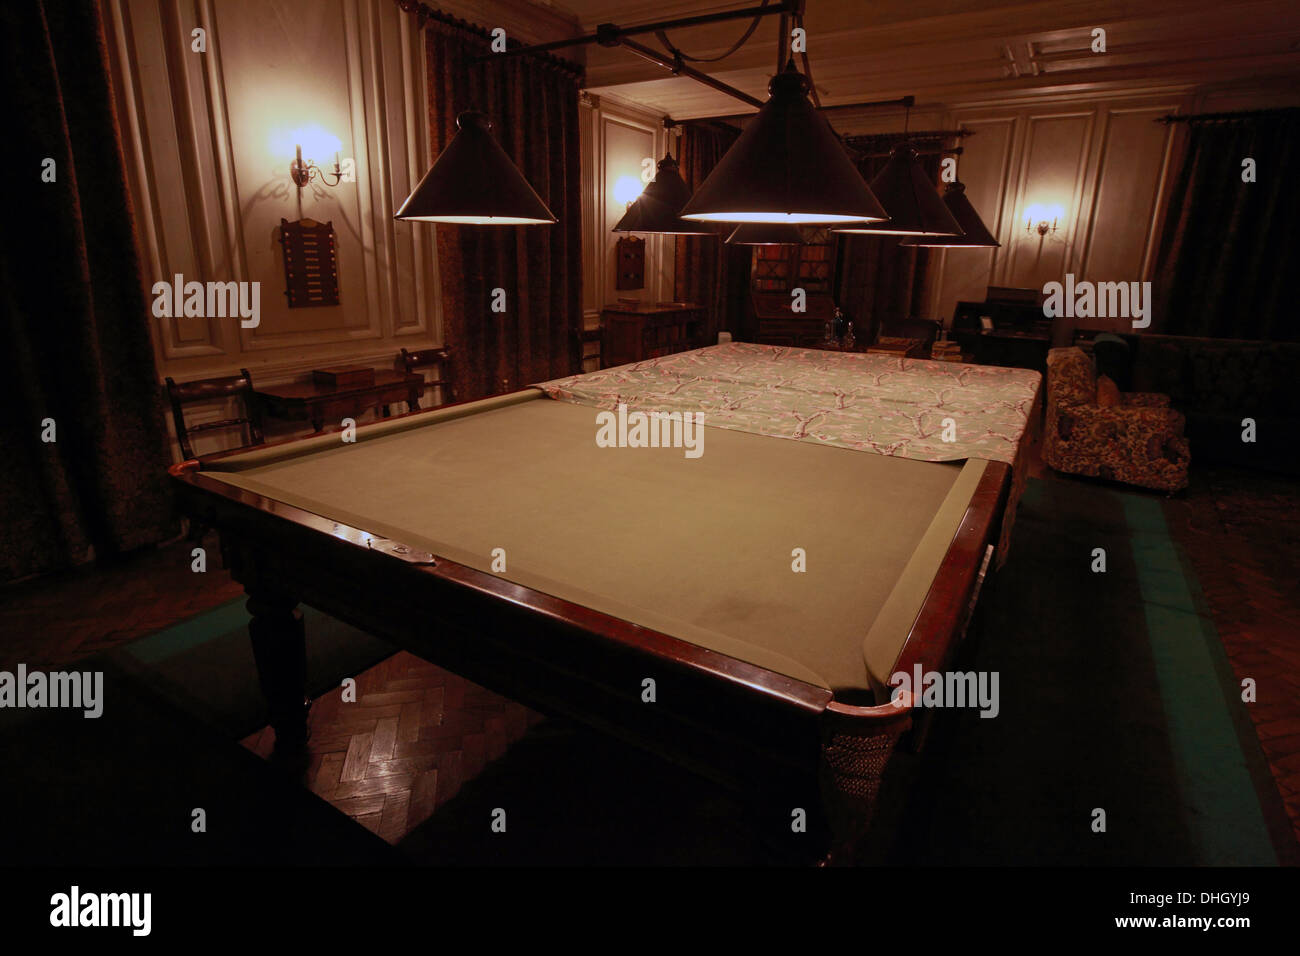 Snooker table in the mens games room at Dunham Massey NT near Altrincham Cheshire, England, UK Stock Photo